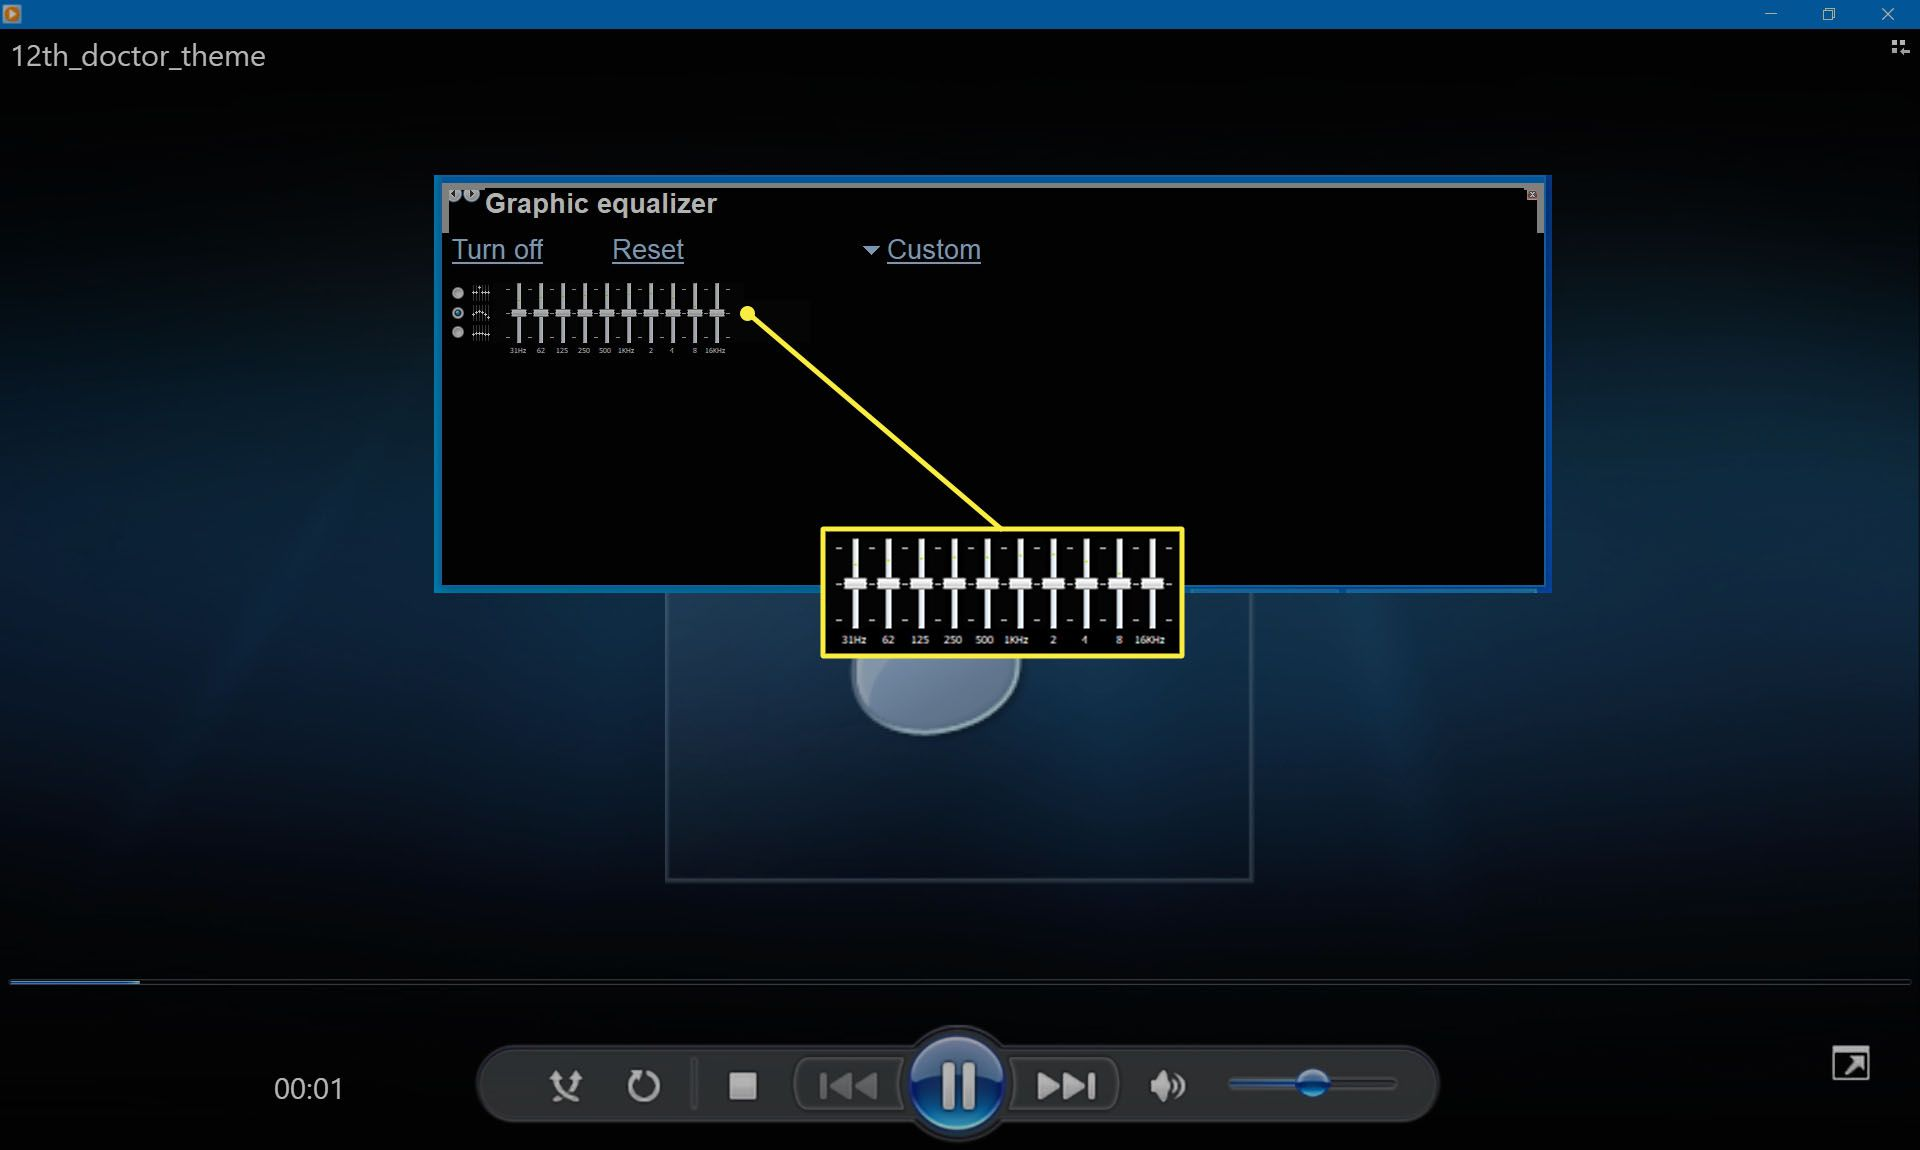 The equalizer sliders in Windows Media Player 12.